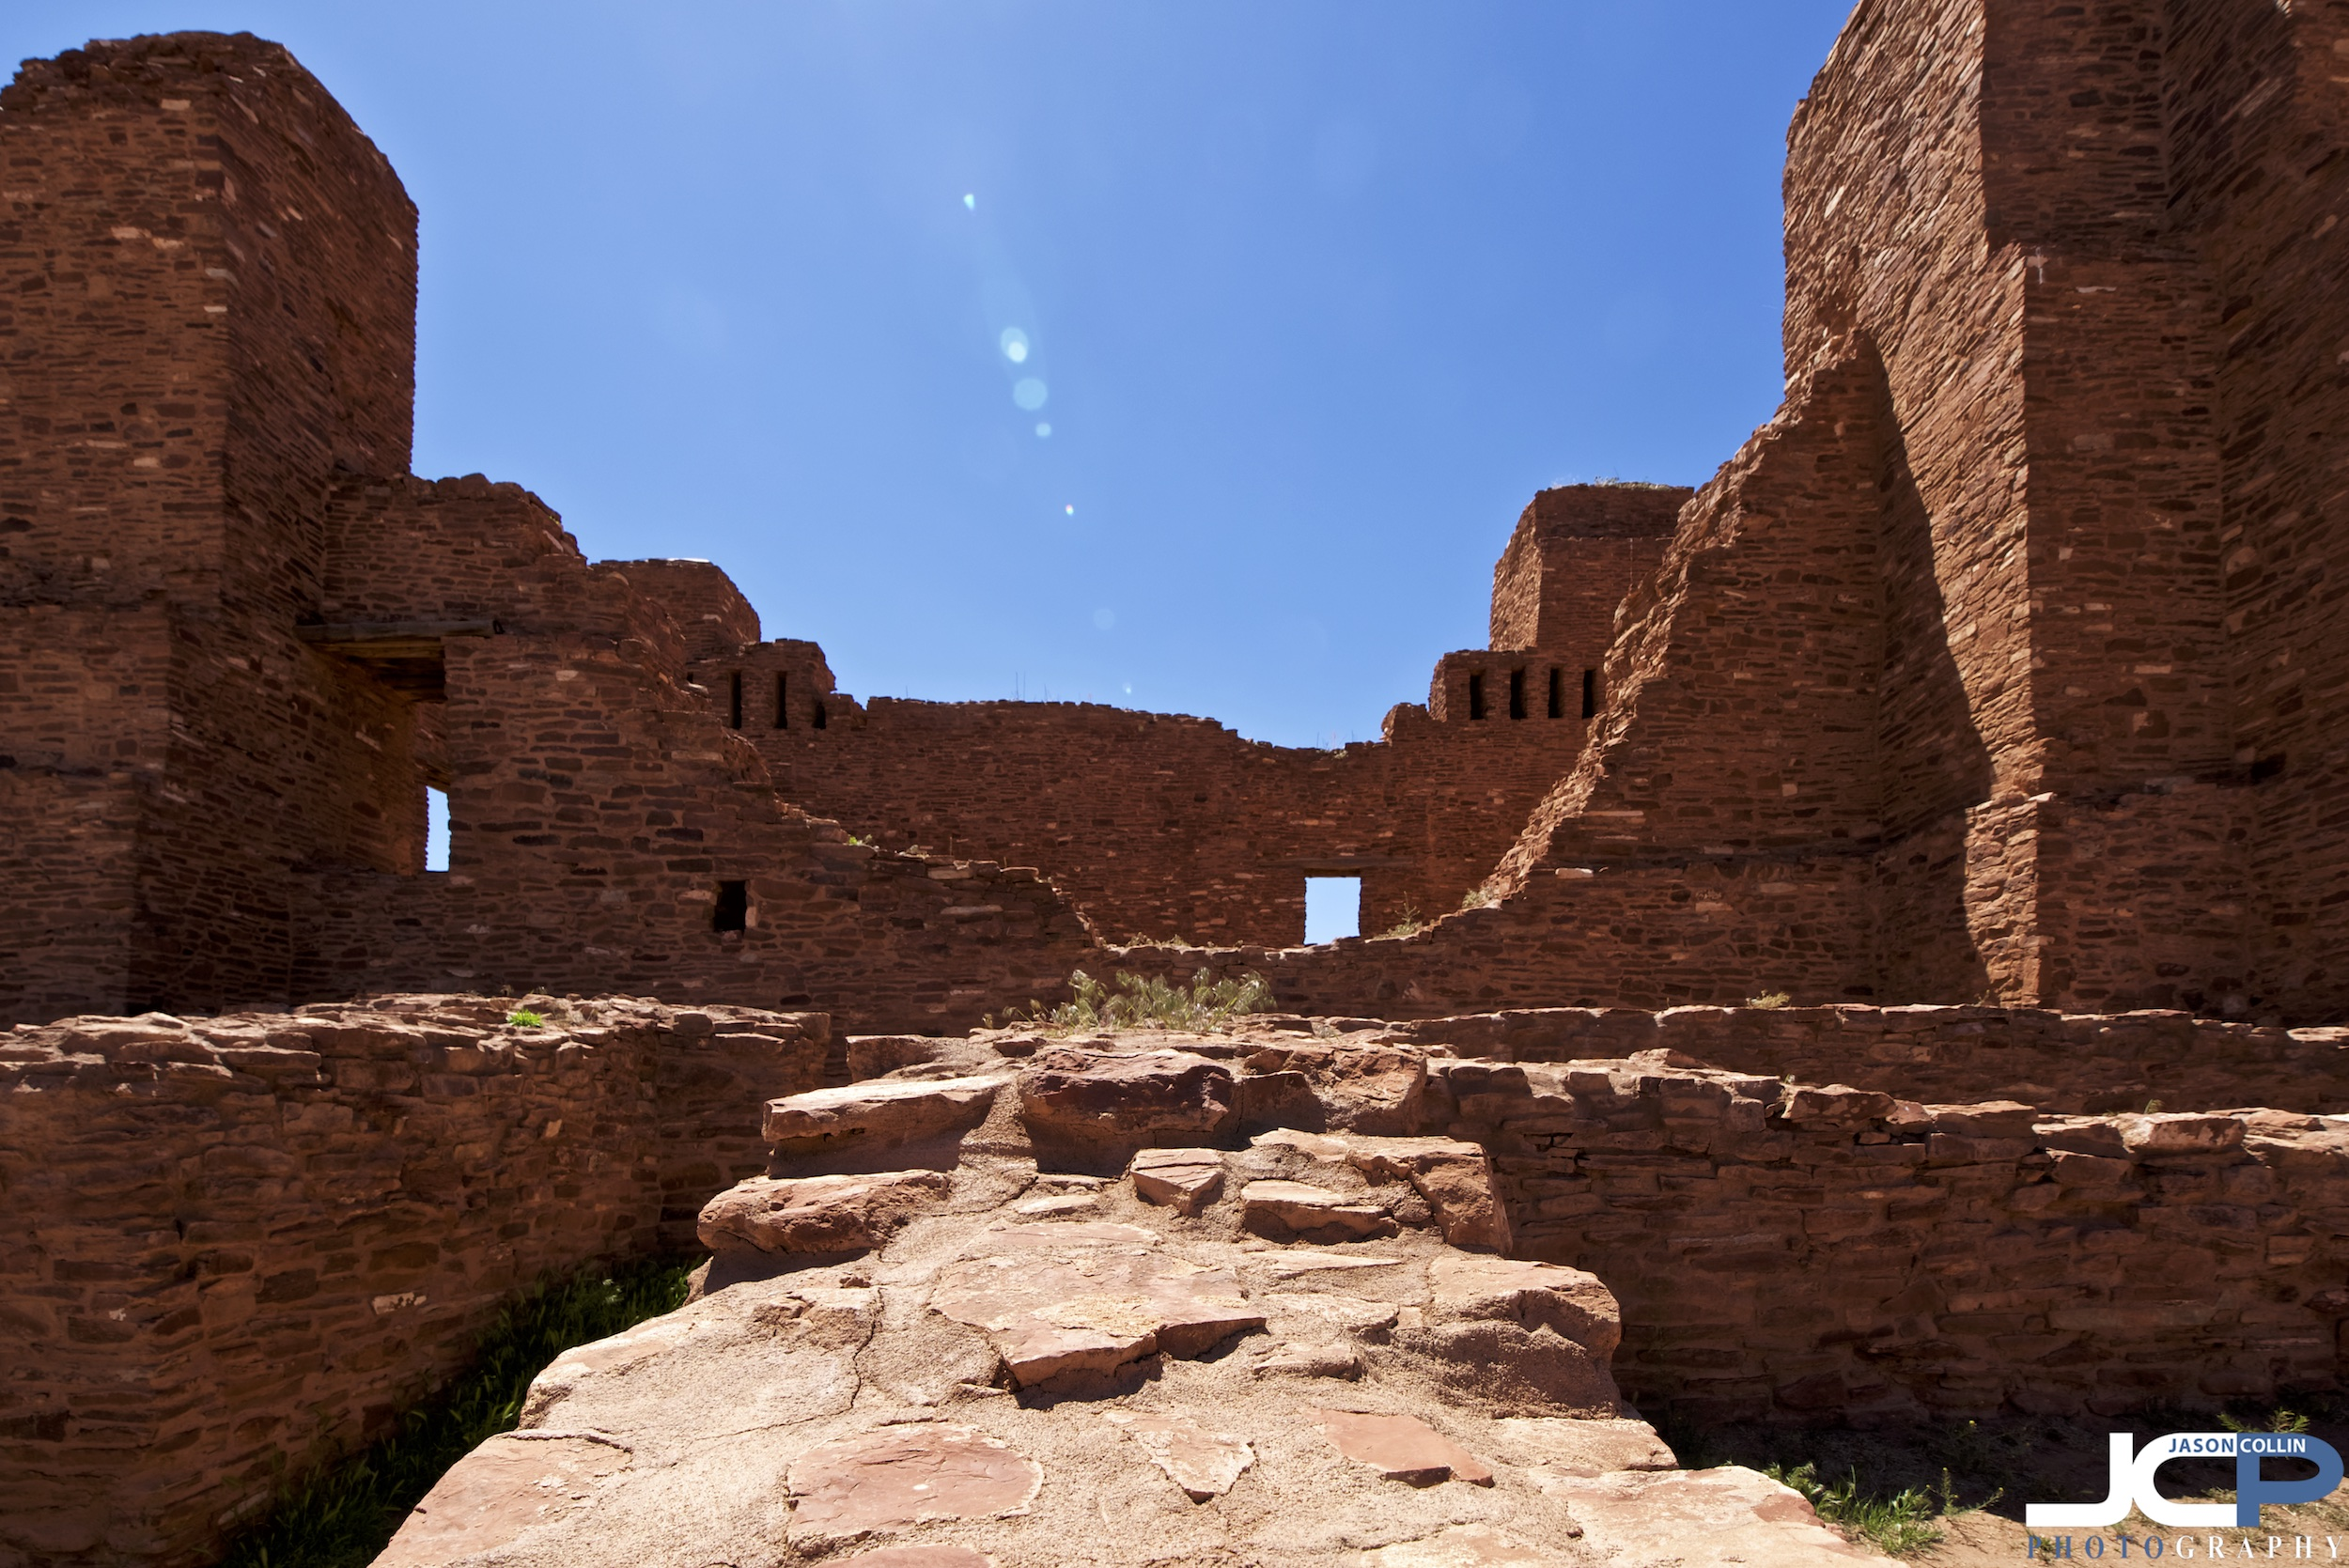 Quarai Mission Ruins in Torrance County, New Mexico part of a National Monument - Nikon D750 with Tamron 15-30mm f/2.8 SP lens